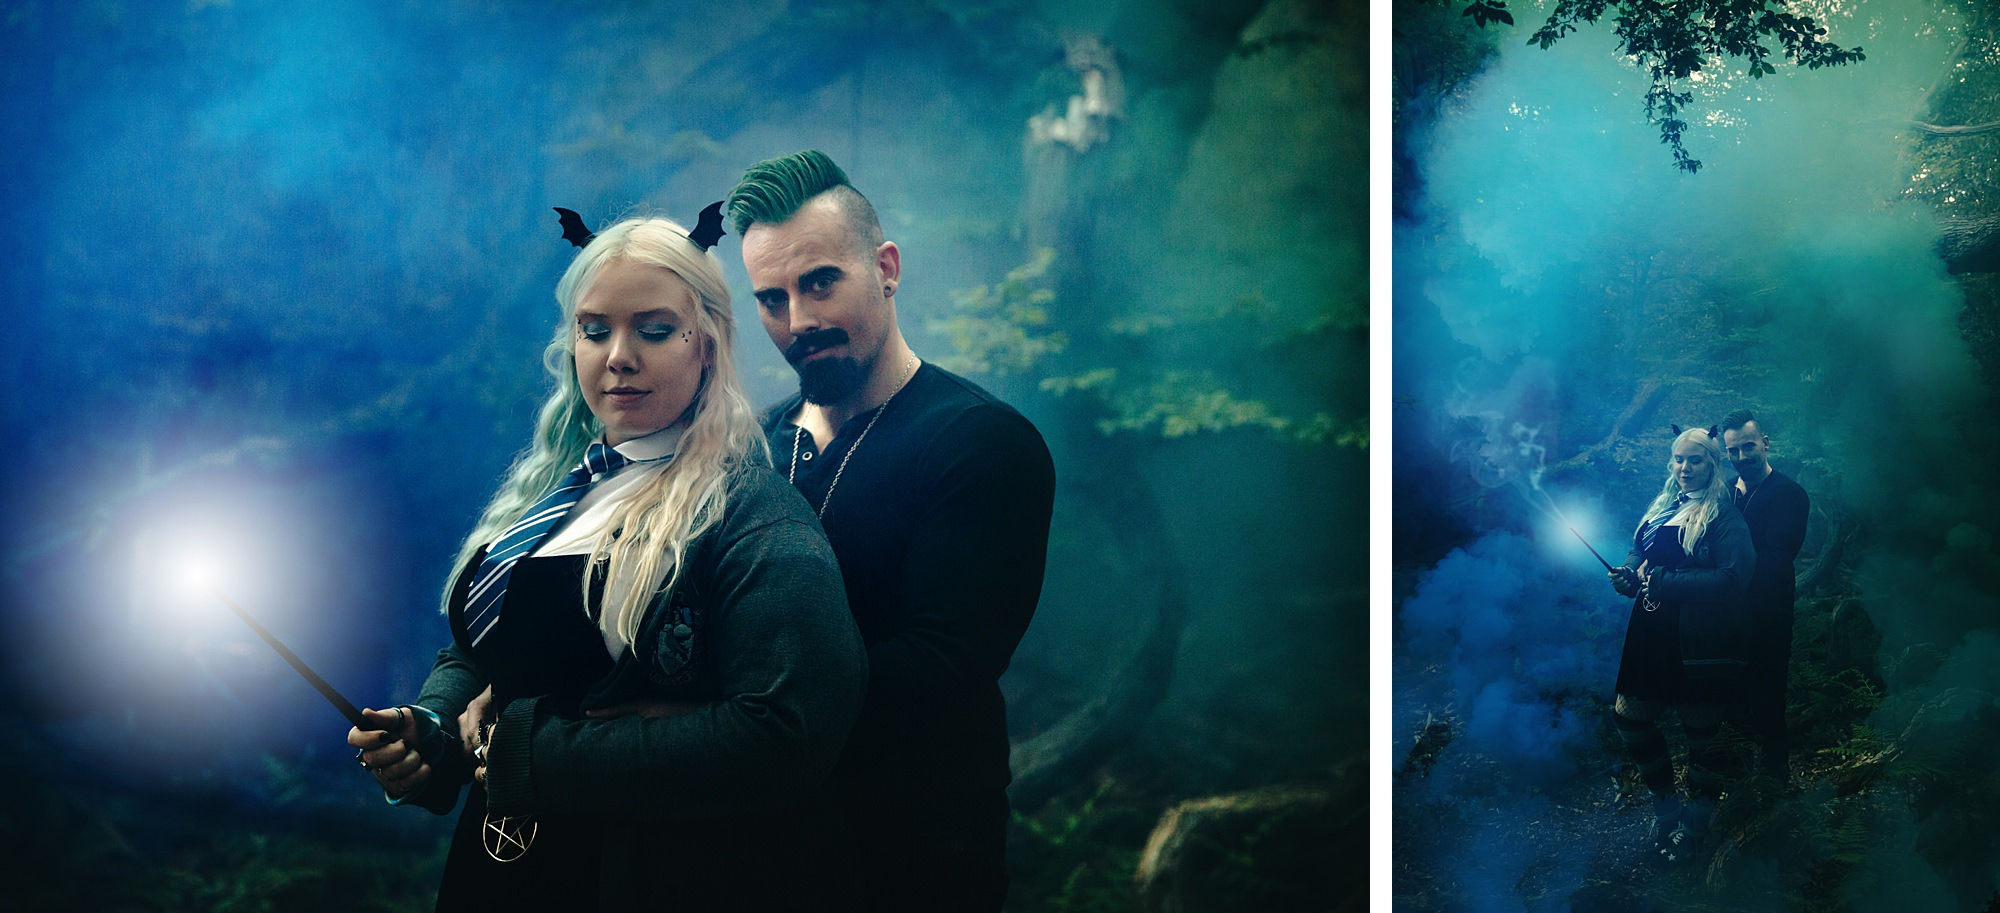 Harry Potter engagement shoot couple in green and blue smoke